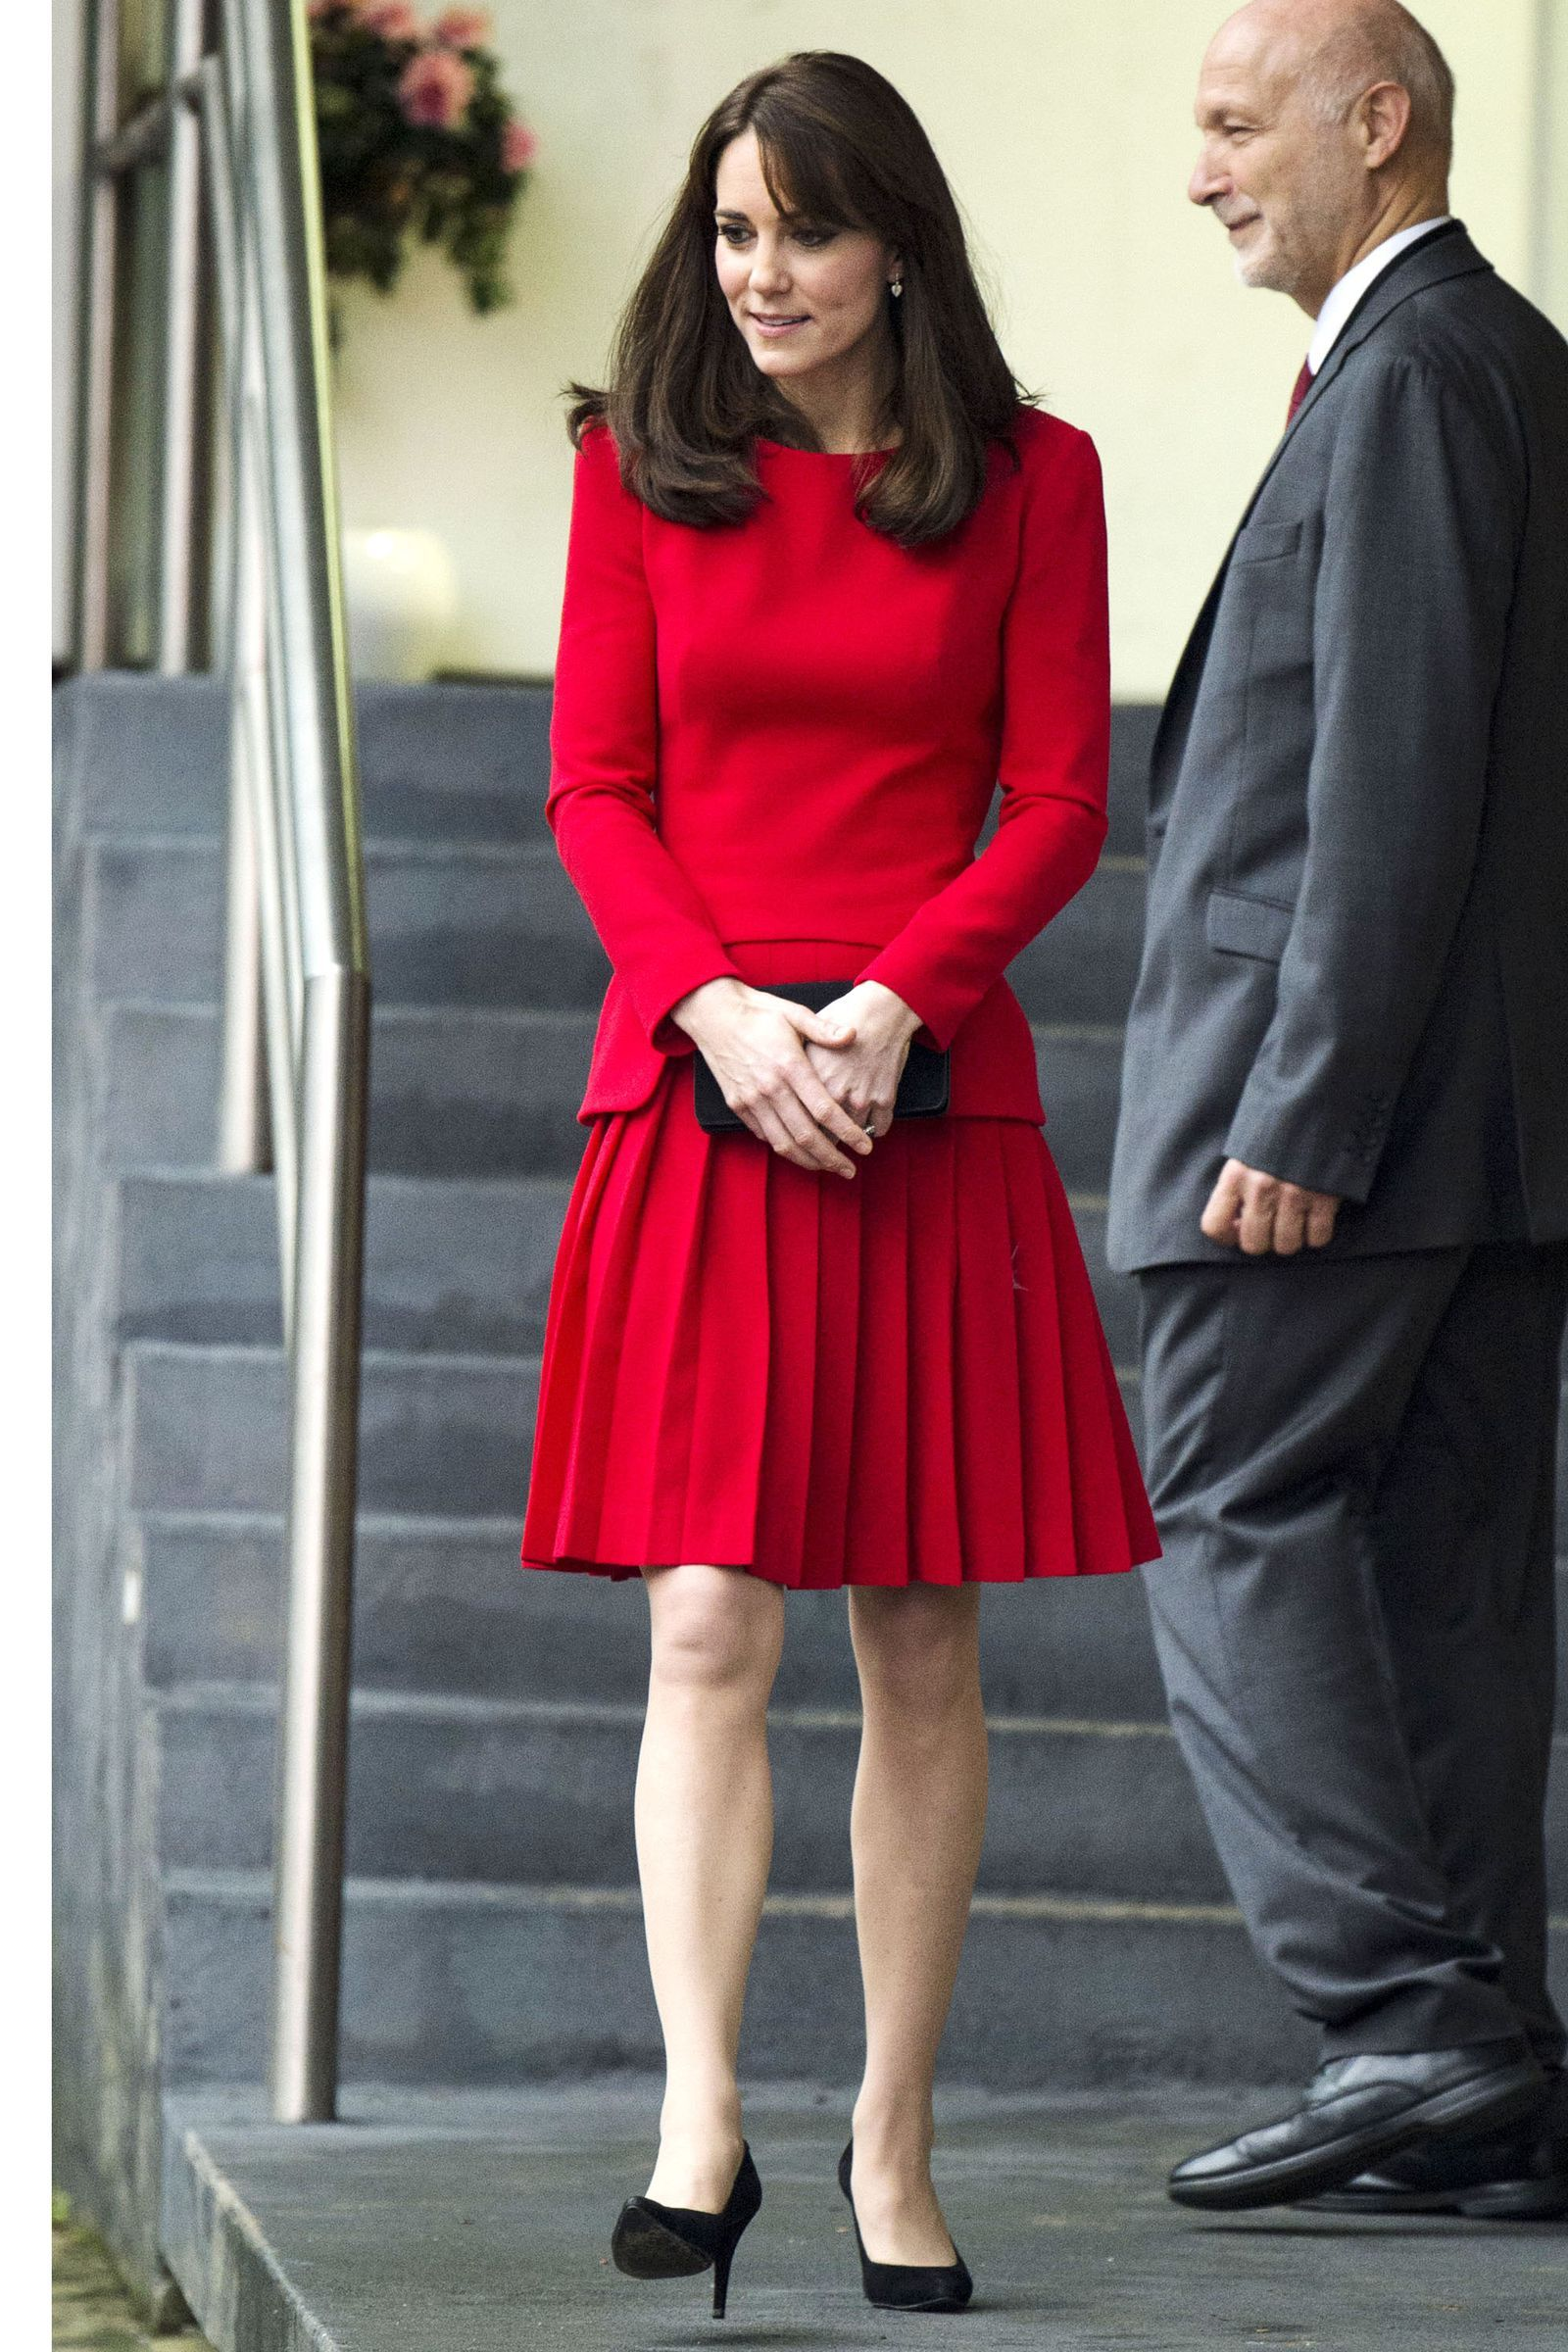 Lace dress kate middleton  Kate Middleton Just Wore the Most Stunning Lace Green Dress